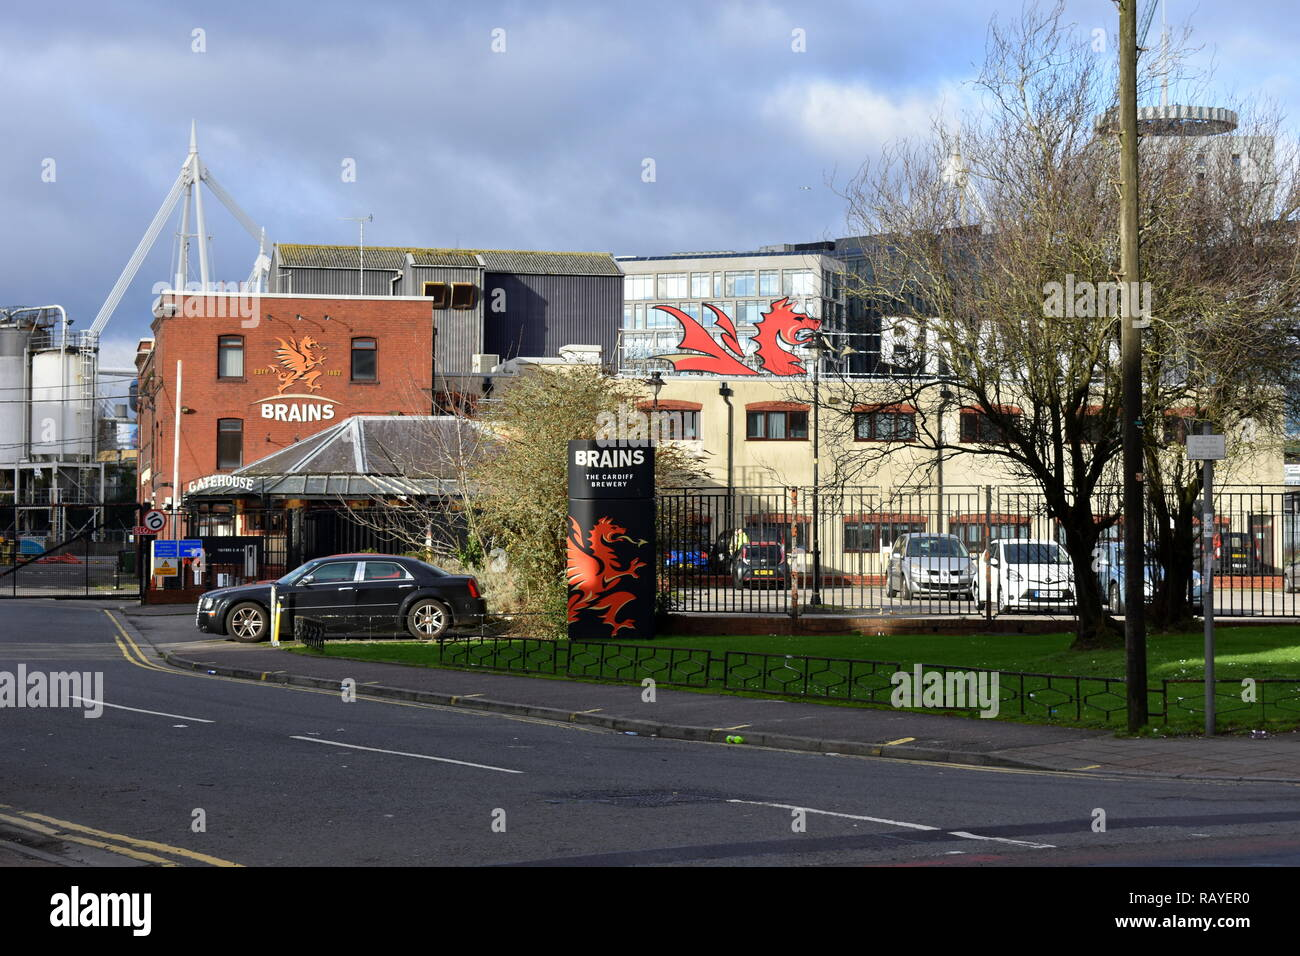 Brains brewery from across the street, Cardiff, South Glamorgan, Wales - Stock Image